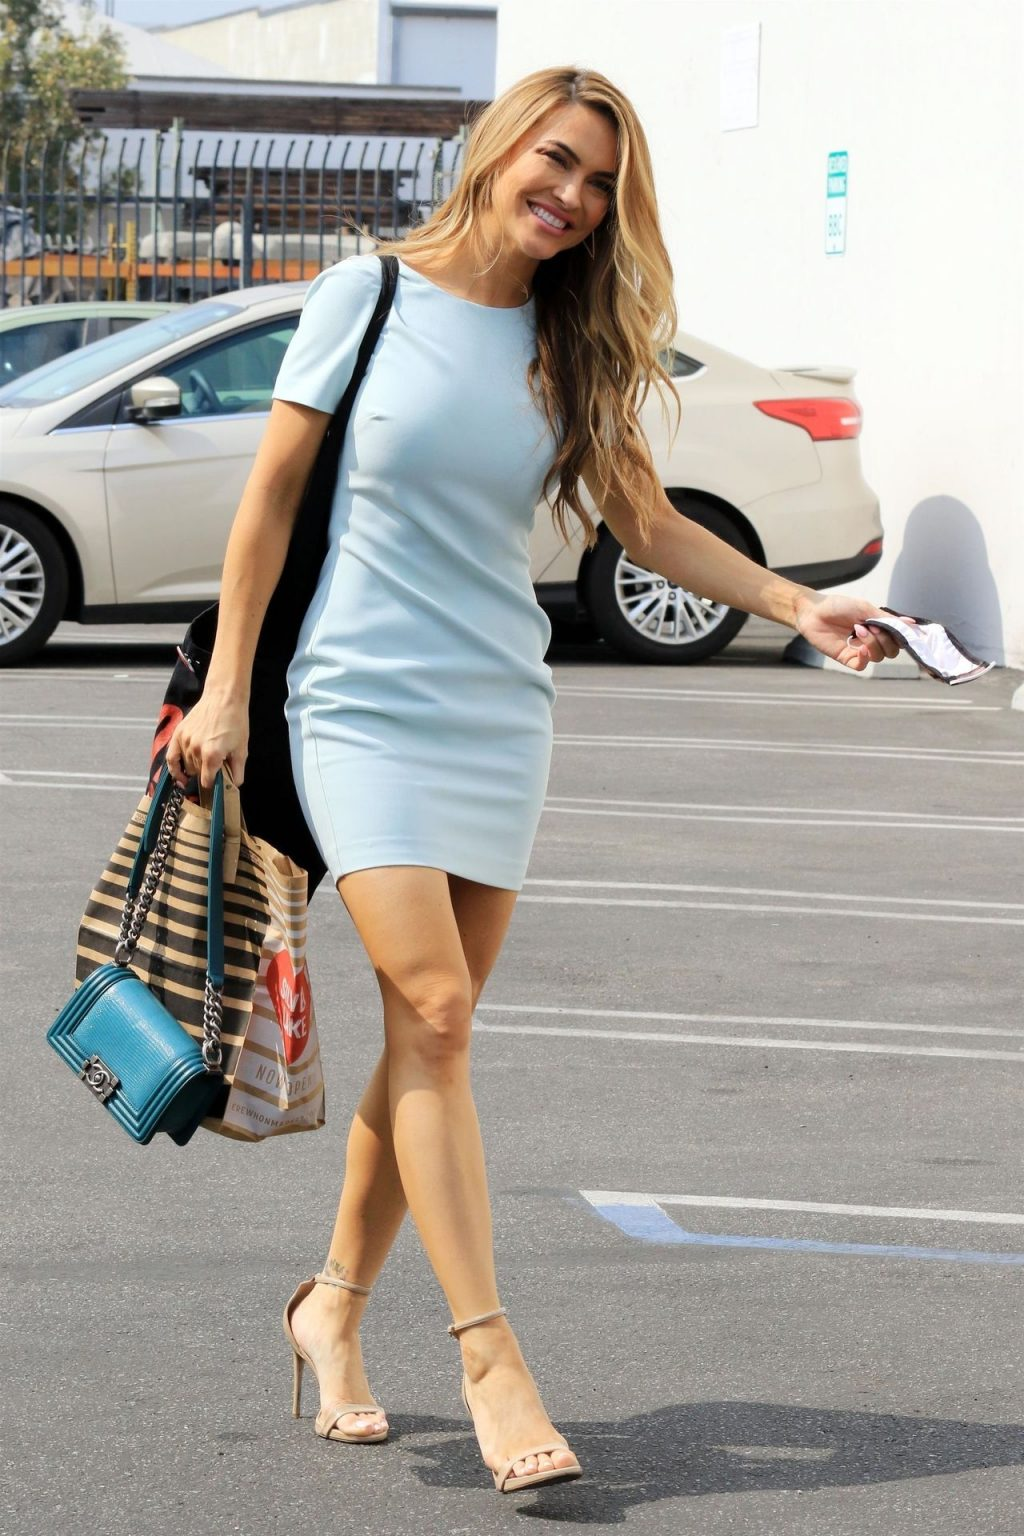 Chrishell Stause Arrives at the Dance Studio with Her Picture-perfect Smile (37 Photos)